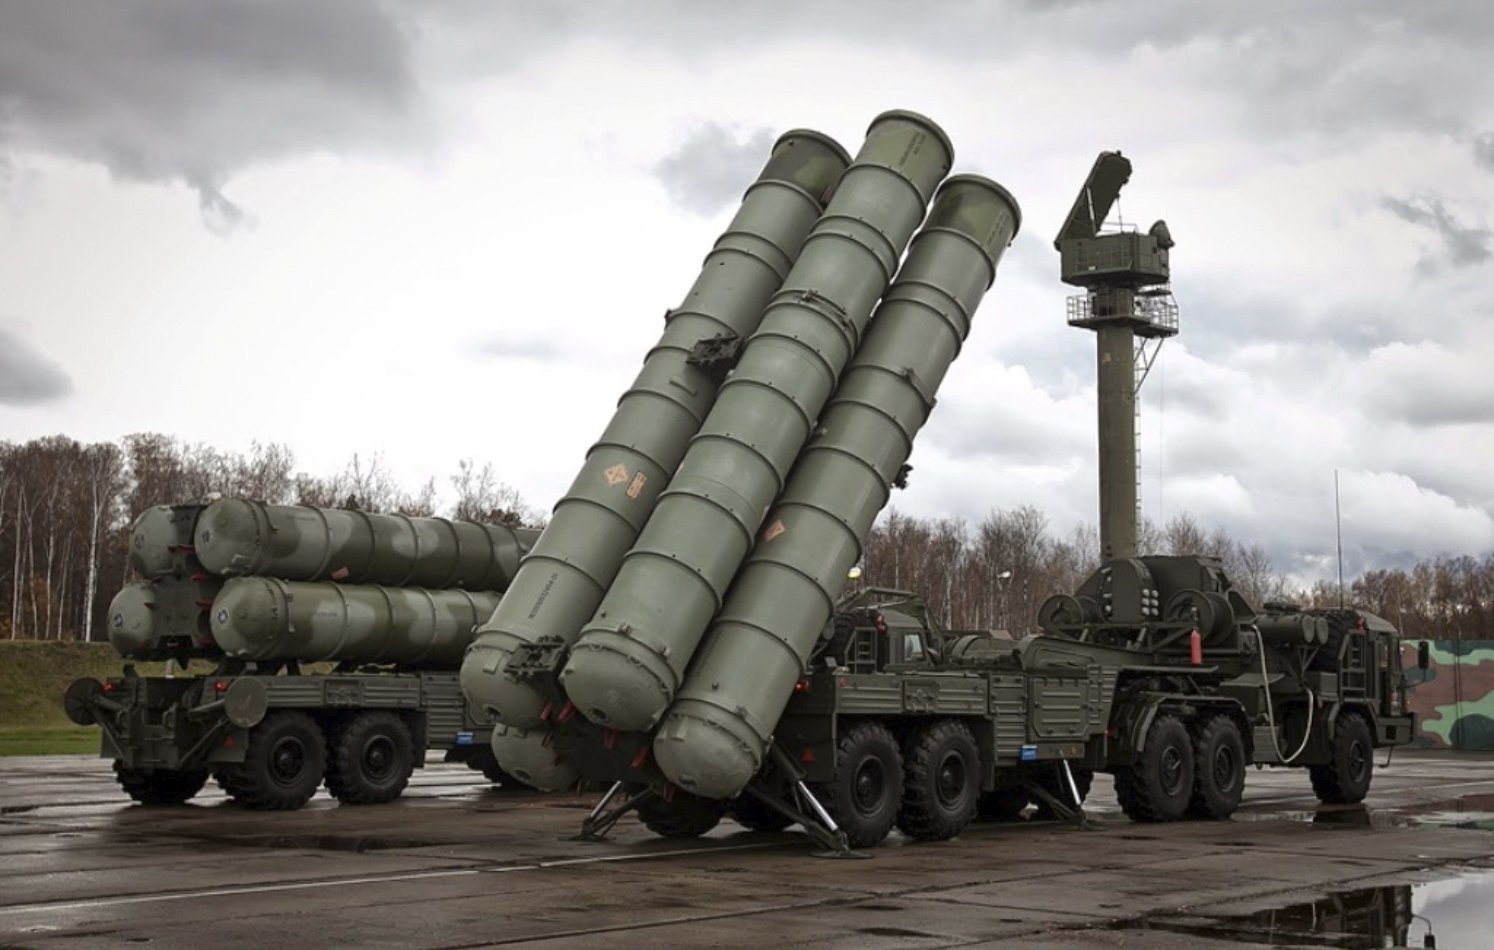 A general view of the S-400 missile system.